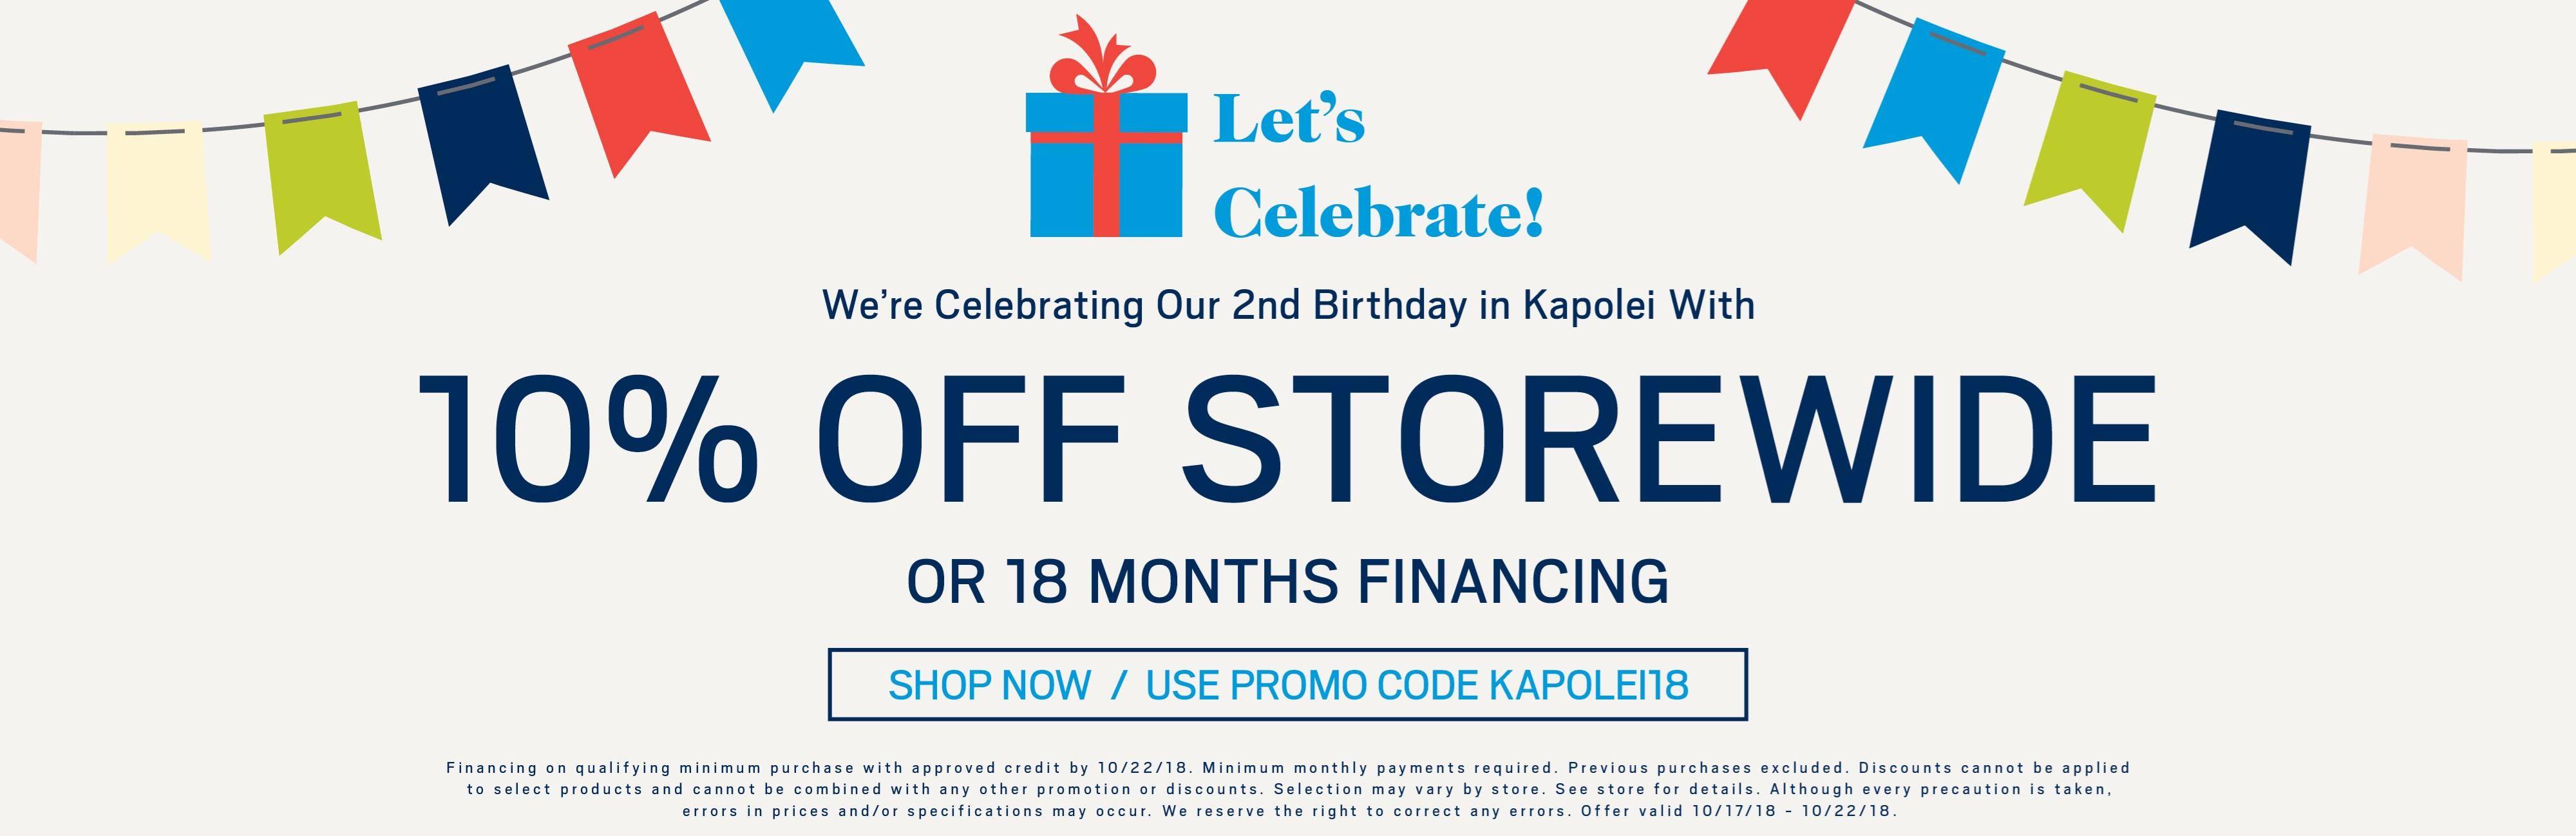 10% off storewide; see store for details.